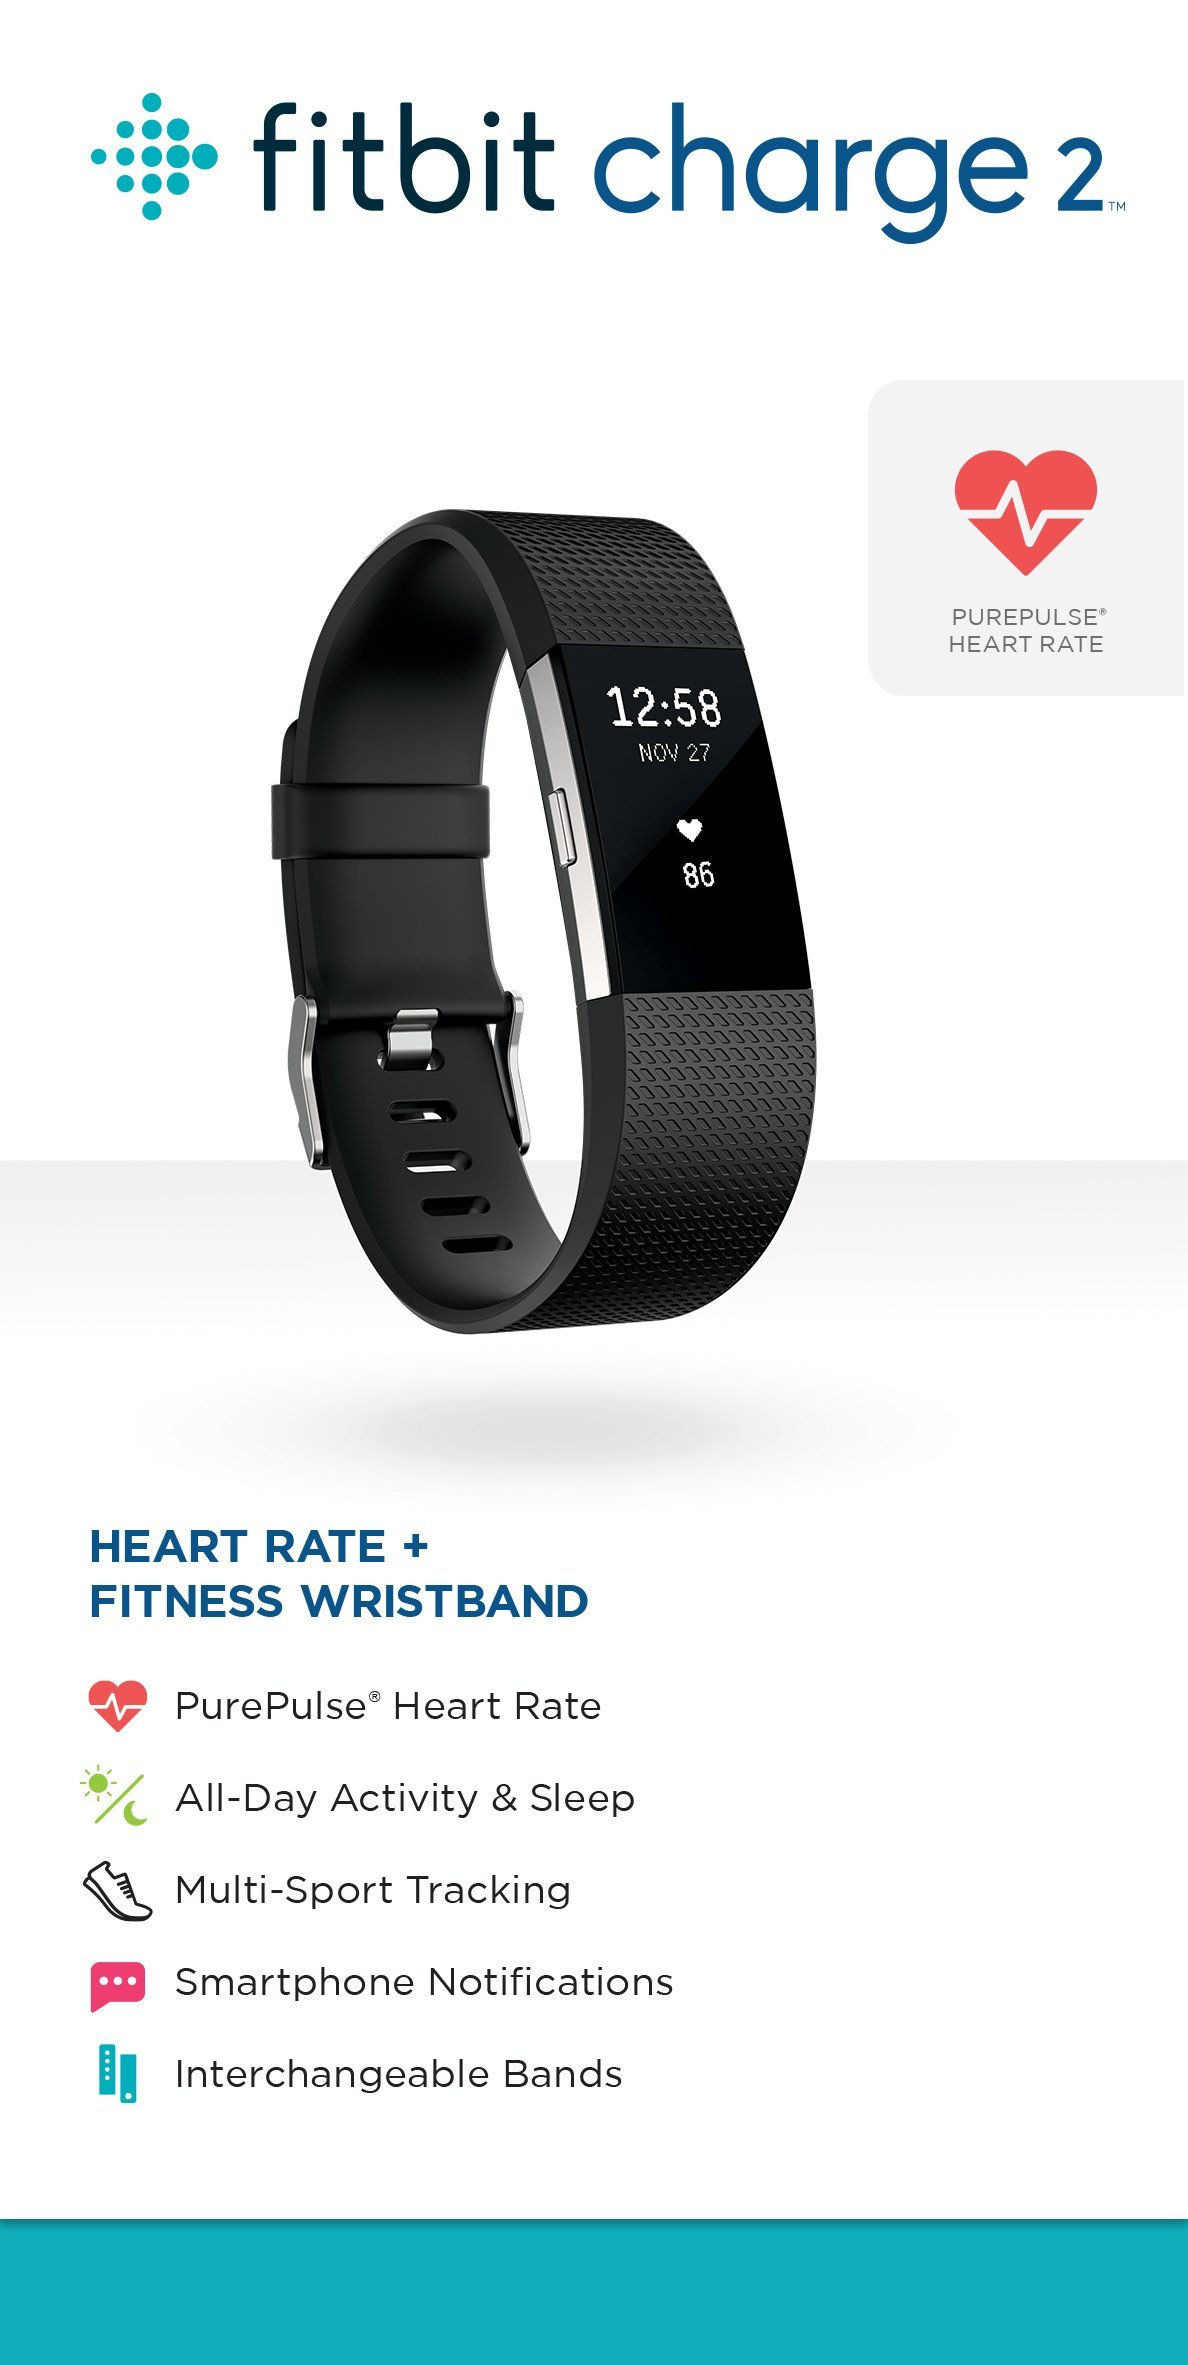 Fitbit Charge 2 Superwatch Wireless Smart Activity and Fitness Tracker + Heart Rate and Sleep Monitor Smart Wristband, Black, Small (5.5-6.7 in) (Renewed) by Fitbit (Image #7)